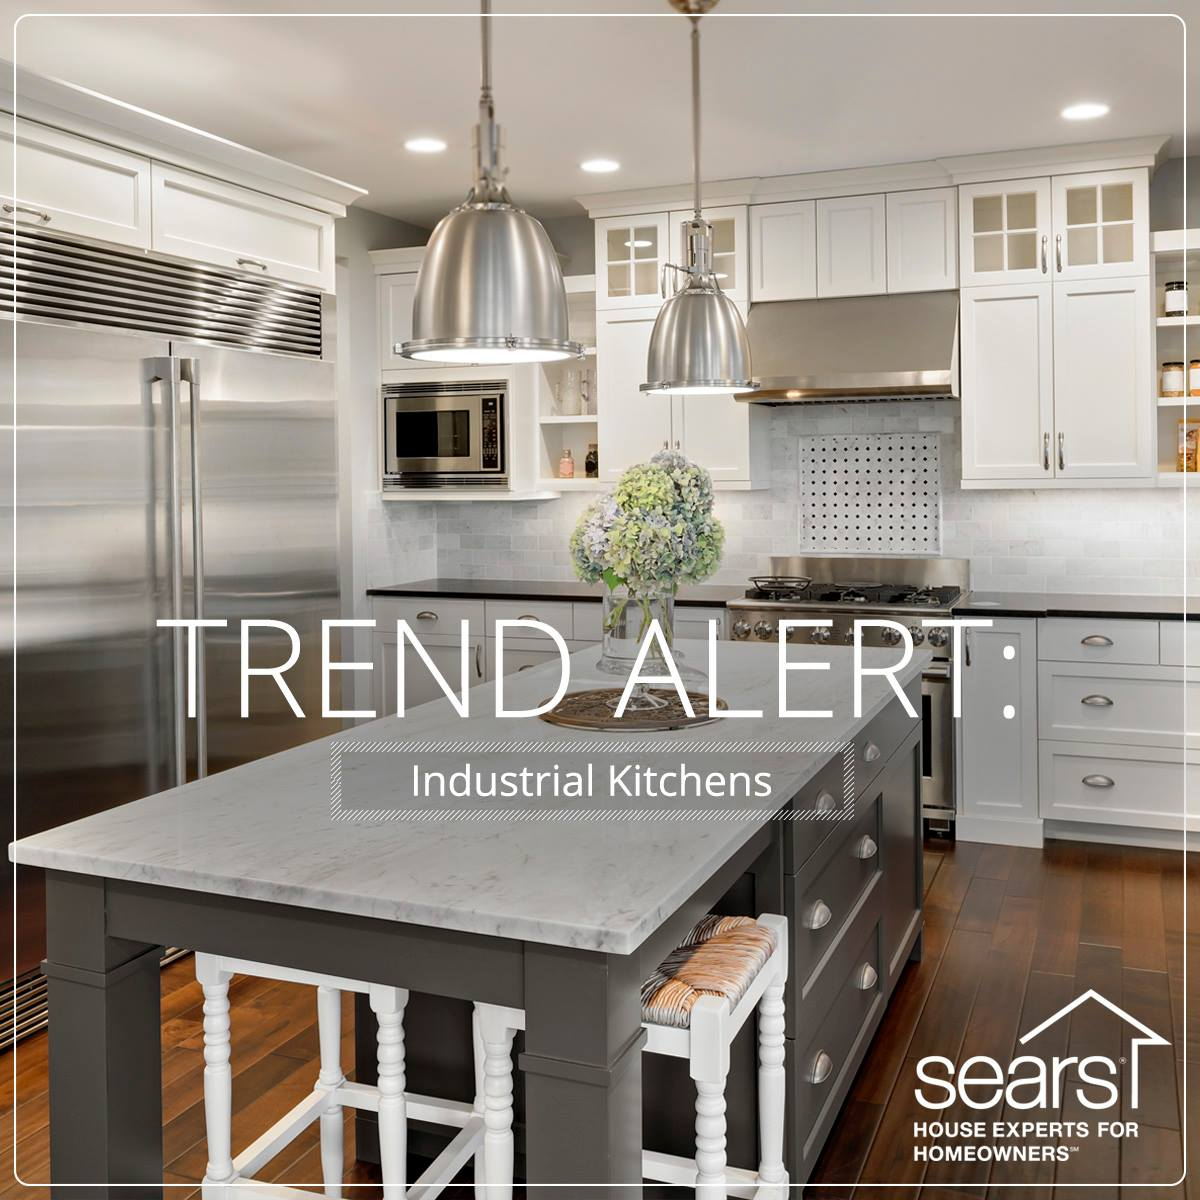 build dream kitchen budget sears kitchen remodel Trend Alert Industrial Kitchens